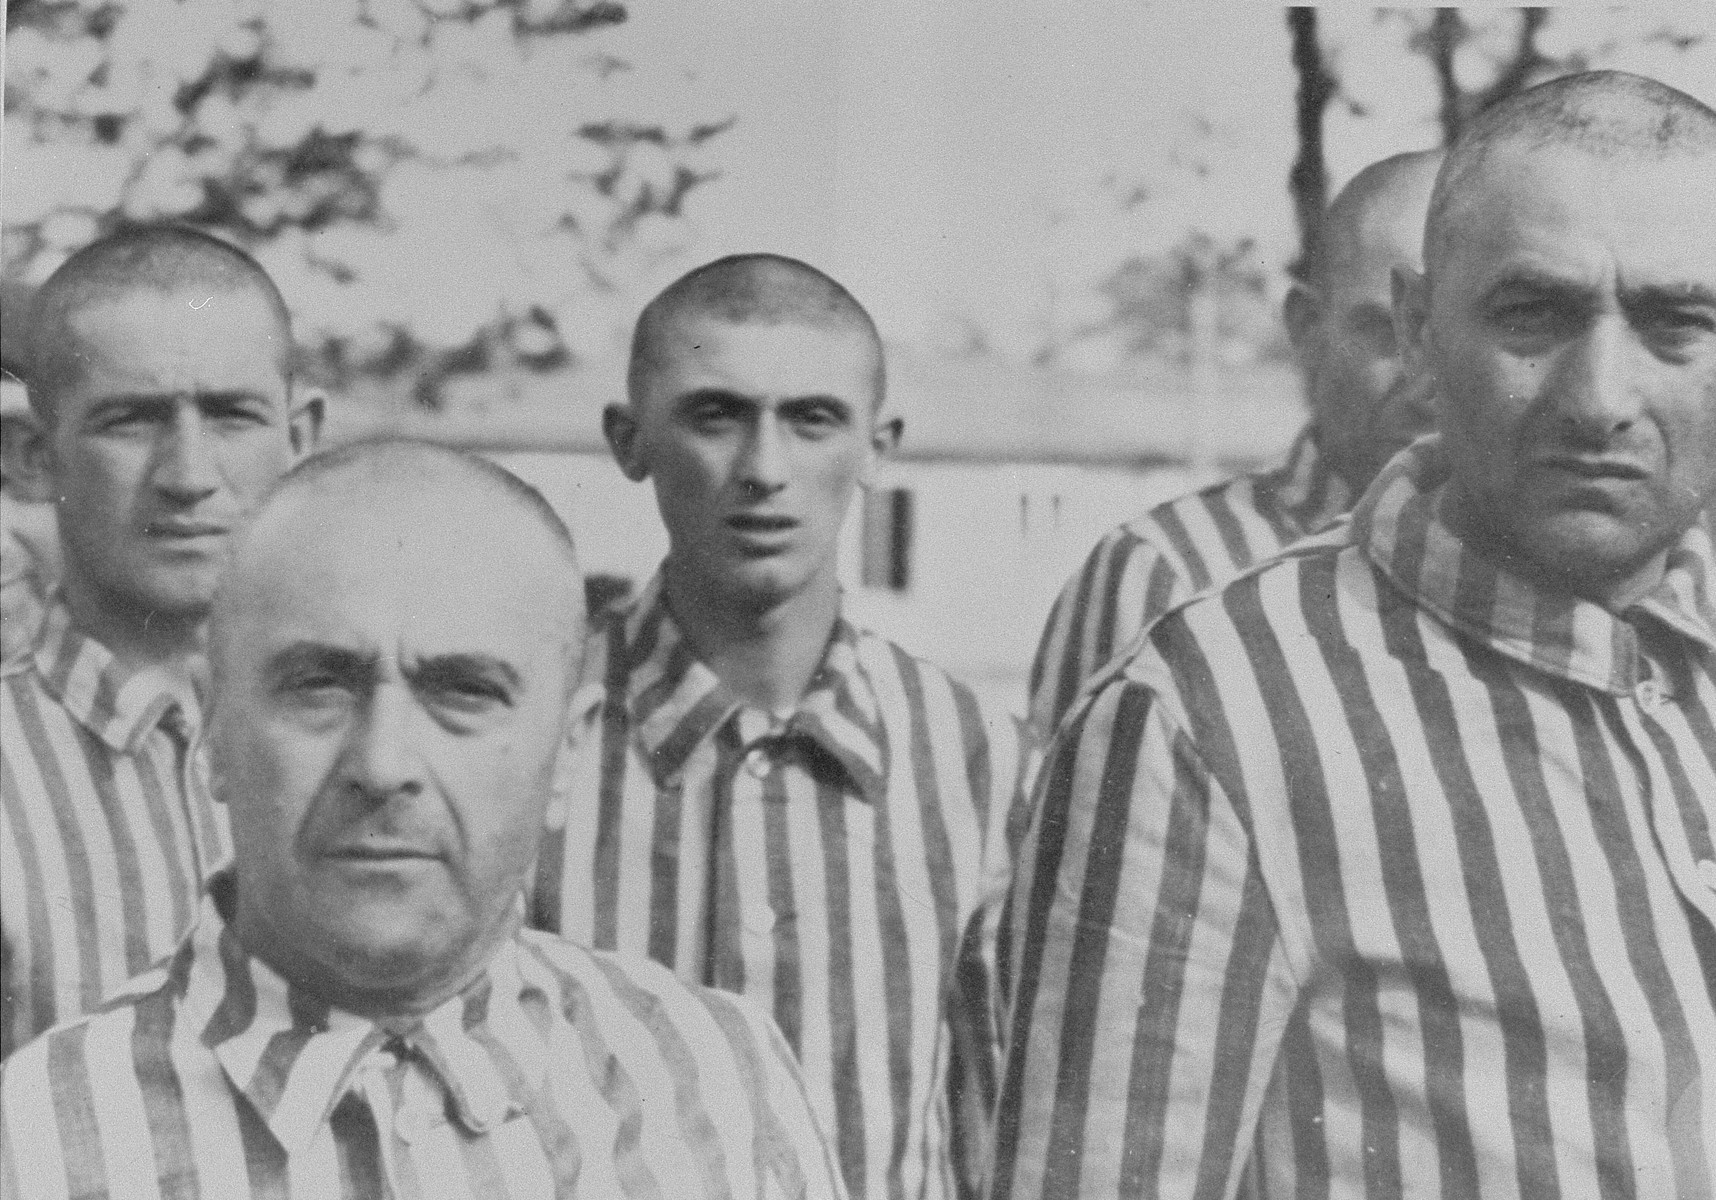 Jewish men from Subcarpathian Rus who have been, selected for forced labor at Auschwitz-Birkenau, stand in their newly issued prison uniforms at a roll call.   Among those pictured is Istvan Balaszo, a pharmacist from Tecso (left).  Next to him is Itzchak Azik Smilovics, and behind them is Moshe Vogel.